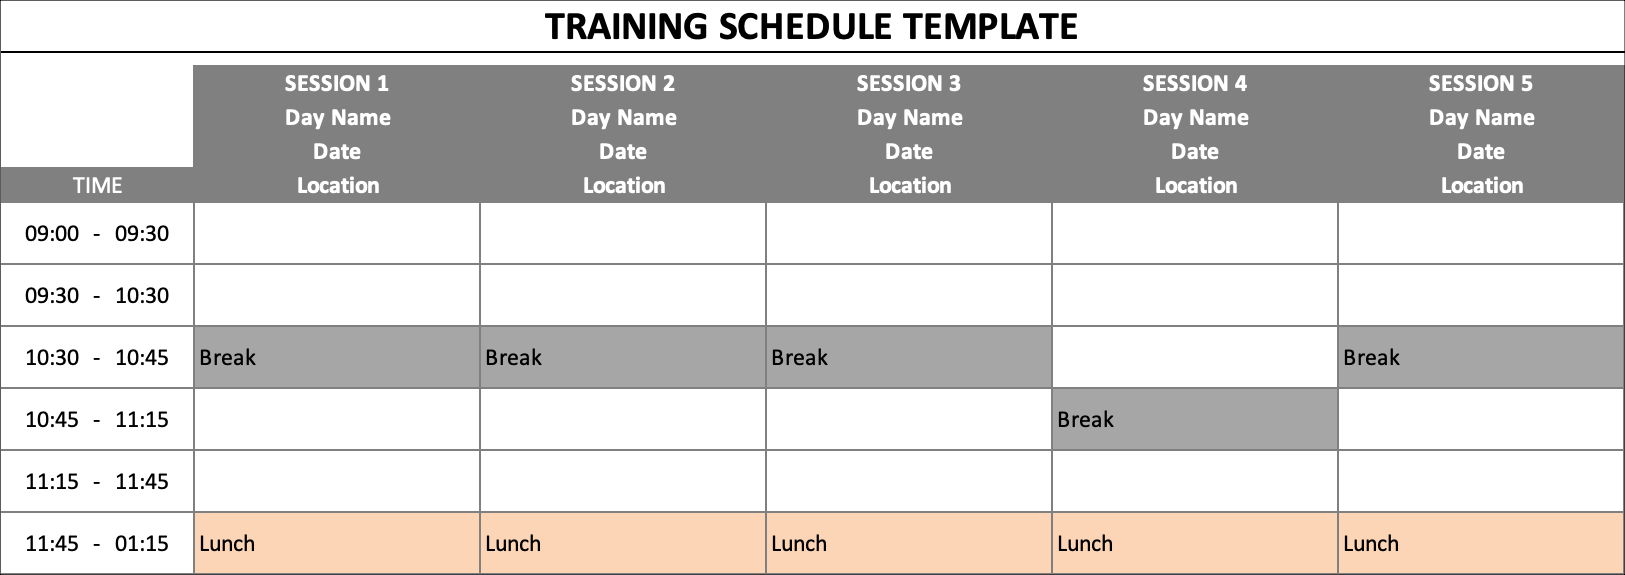 Training Schedule Breaks Lunches